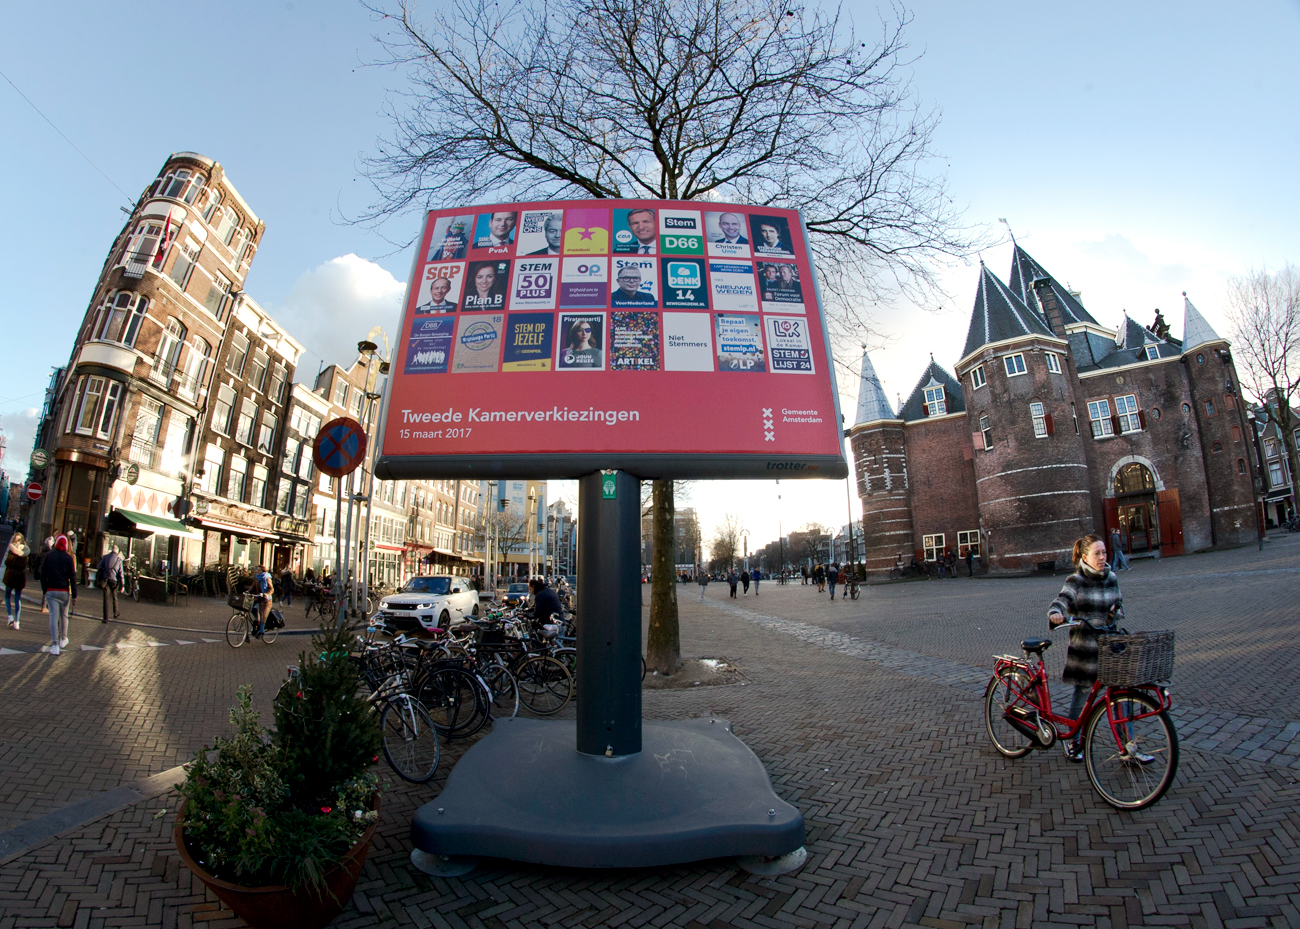 An election billboard is out up in a square in the center of Amsterdam, Netherlands, Feb. 24, 2017.